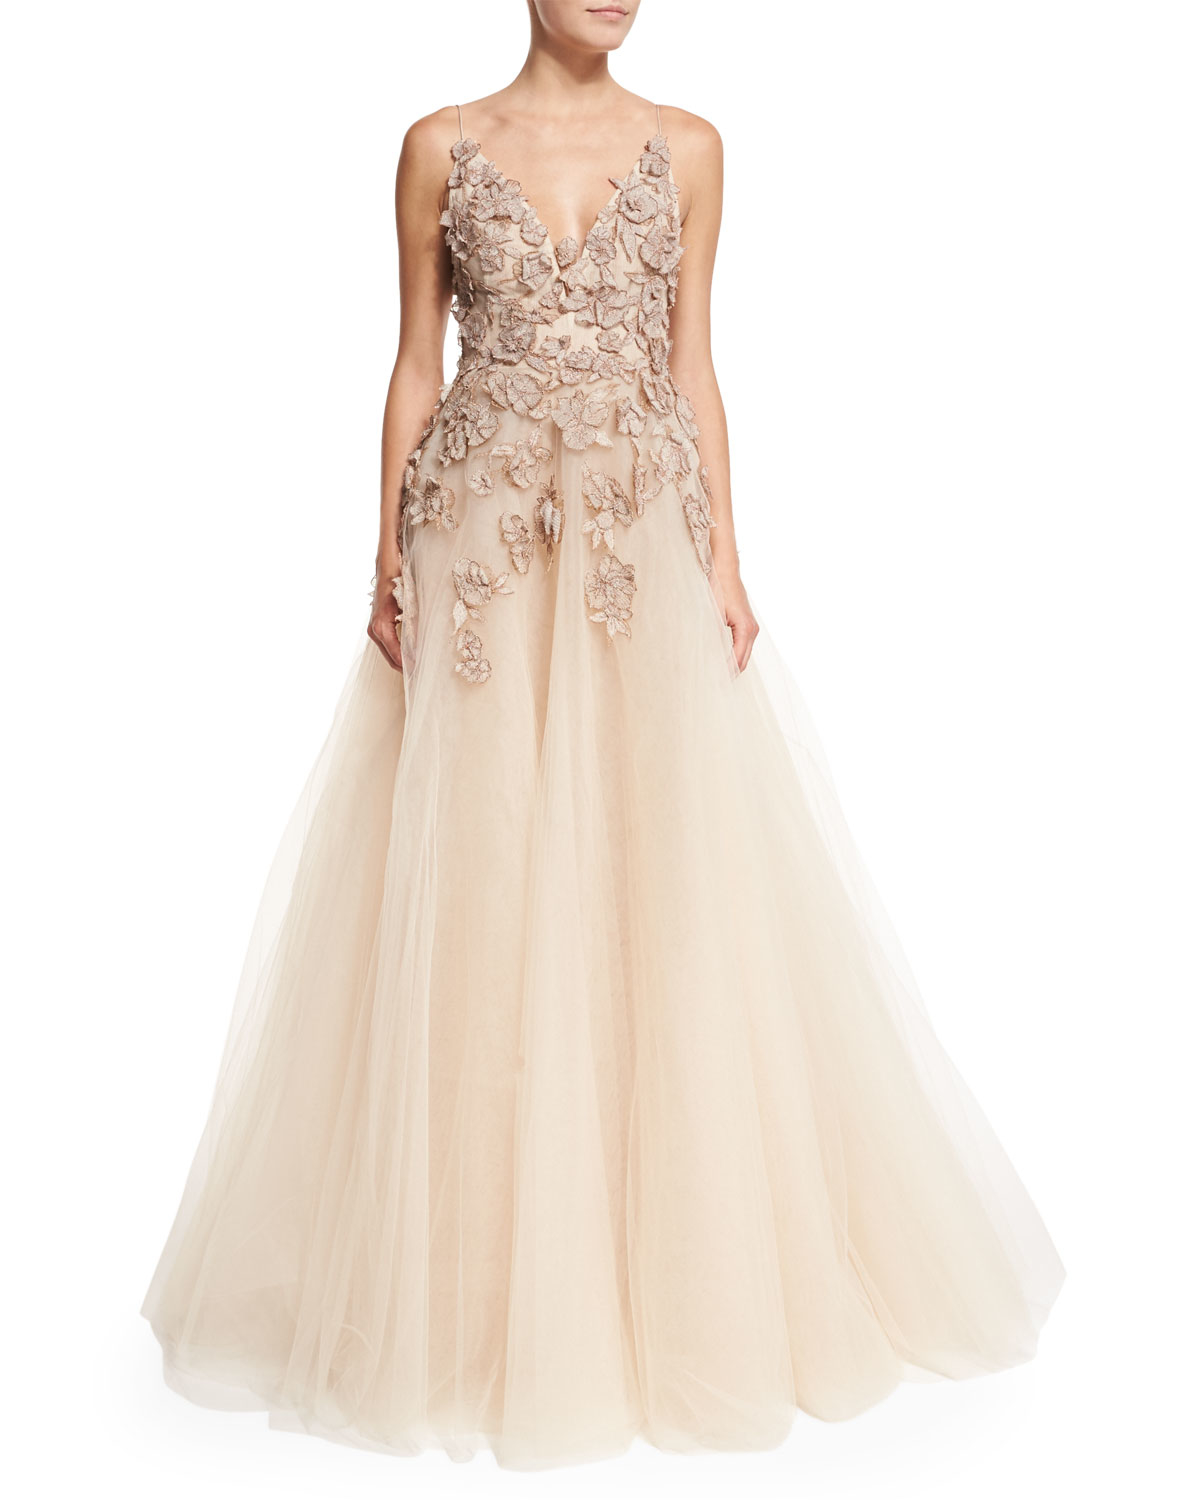 Lyst - Monique Lhuillier Embroidered-bodice Full Tulle Gown in Natural